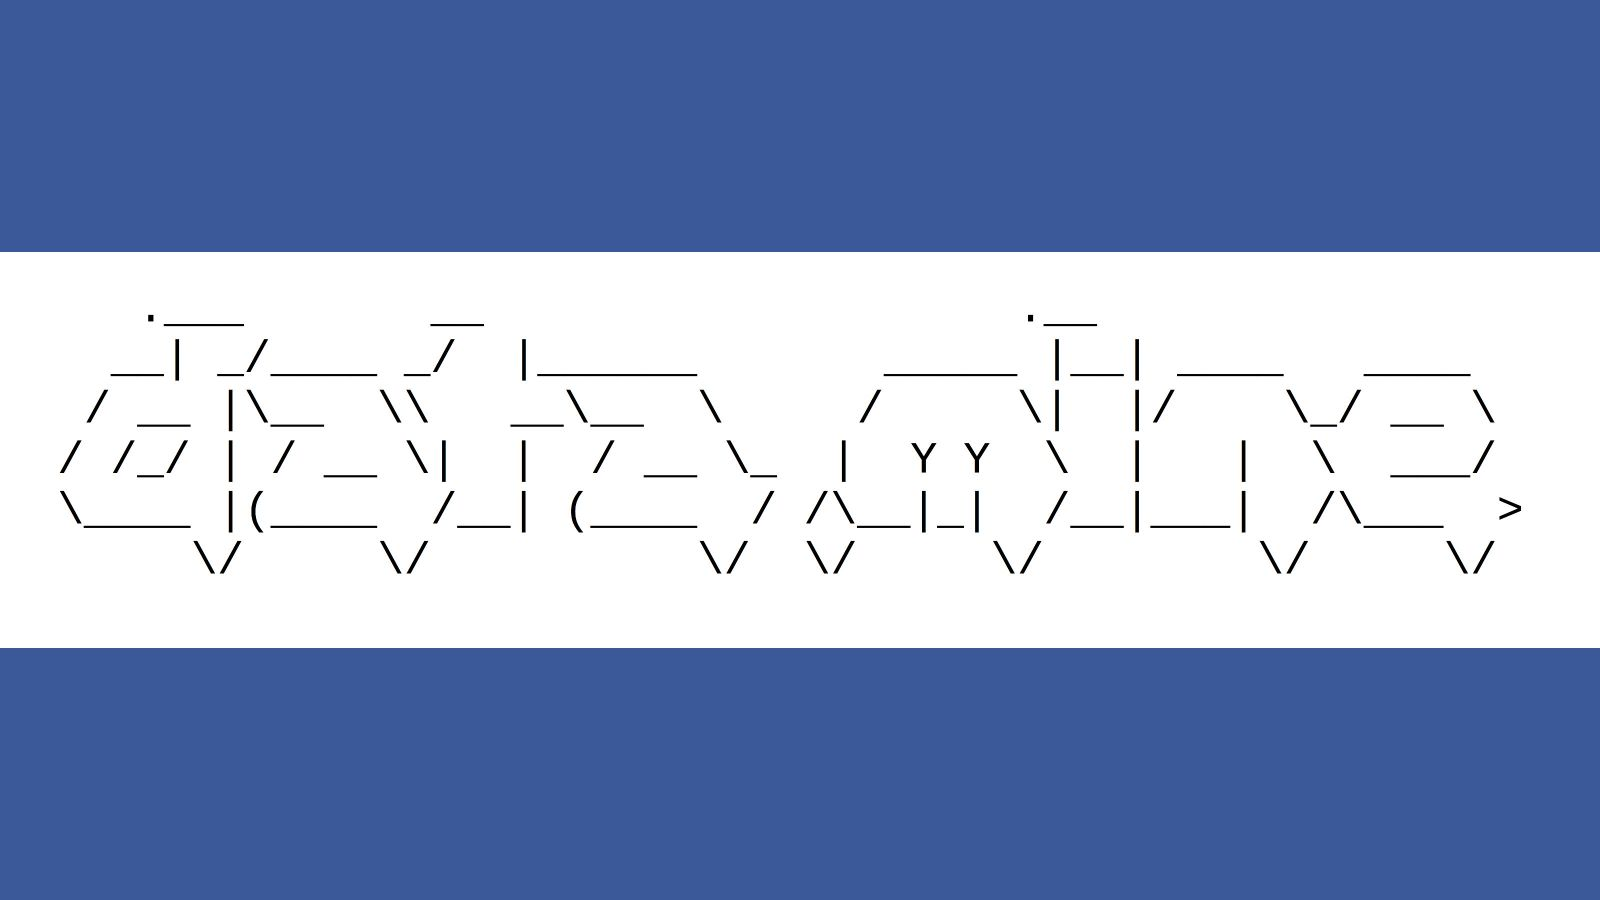 Data Mine logo on white background with wide blue bands above and below